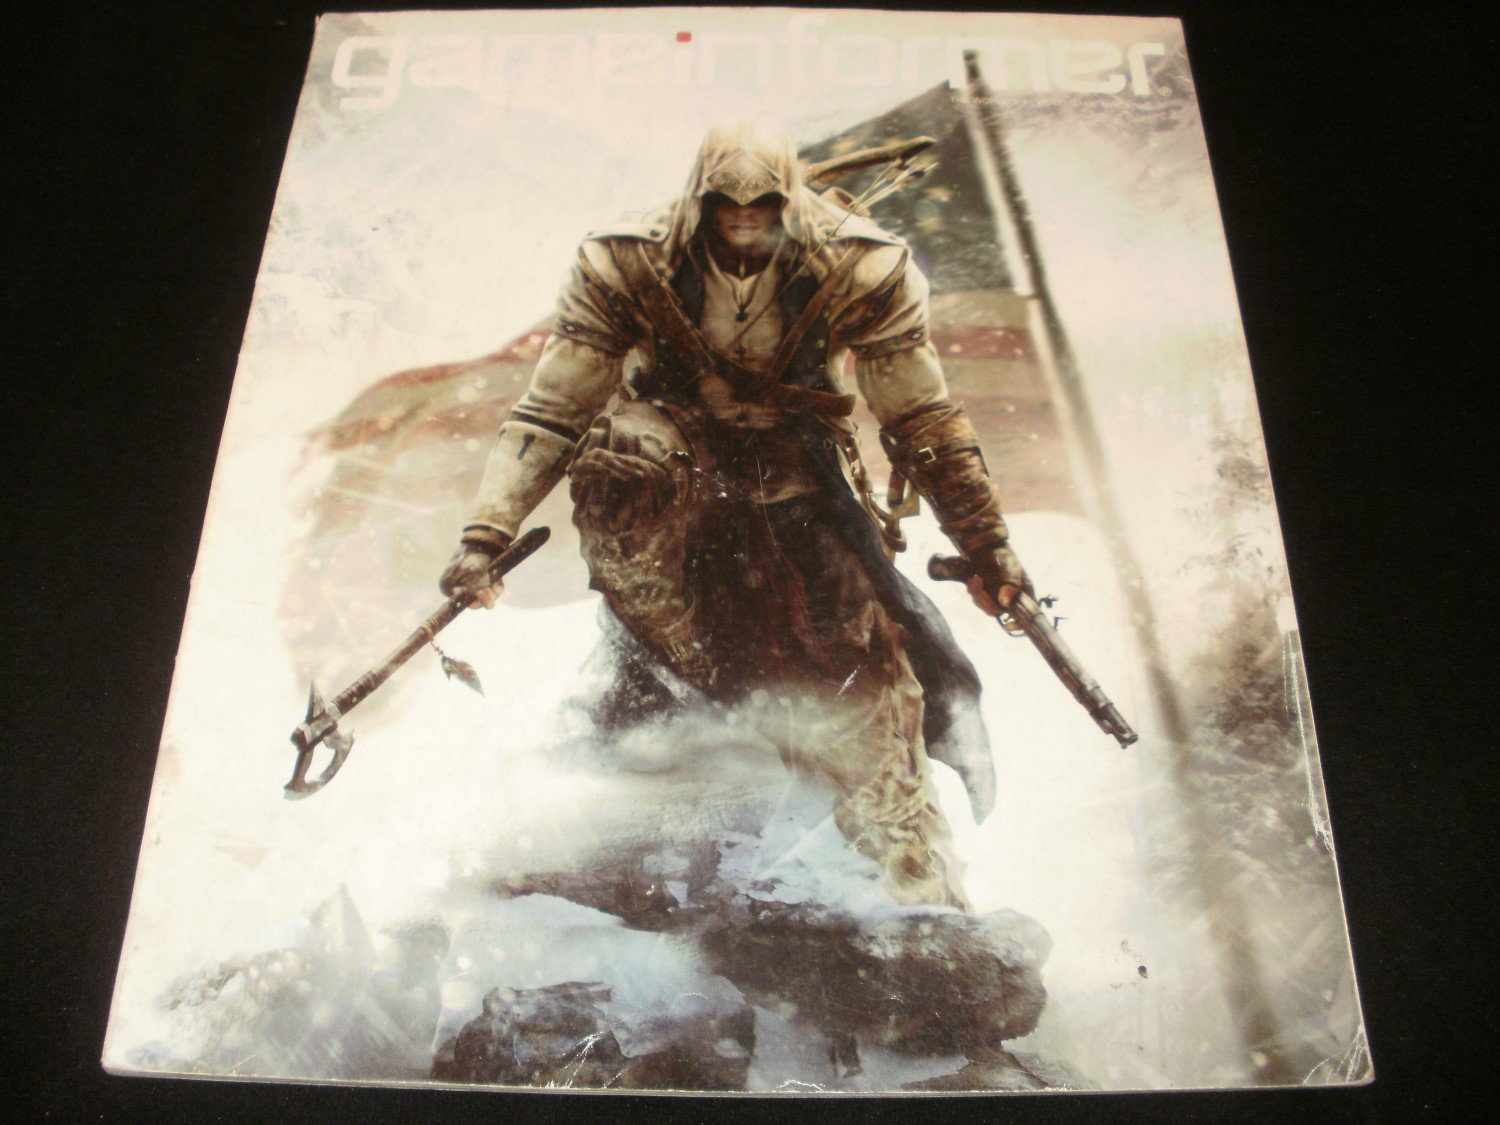 Game Informer Magazine - April 2012 - Issue 228 - Assassin's Creed III